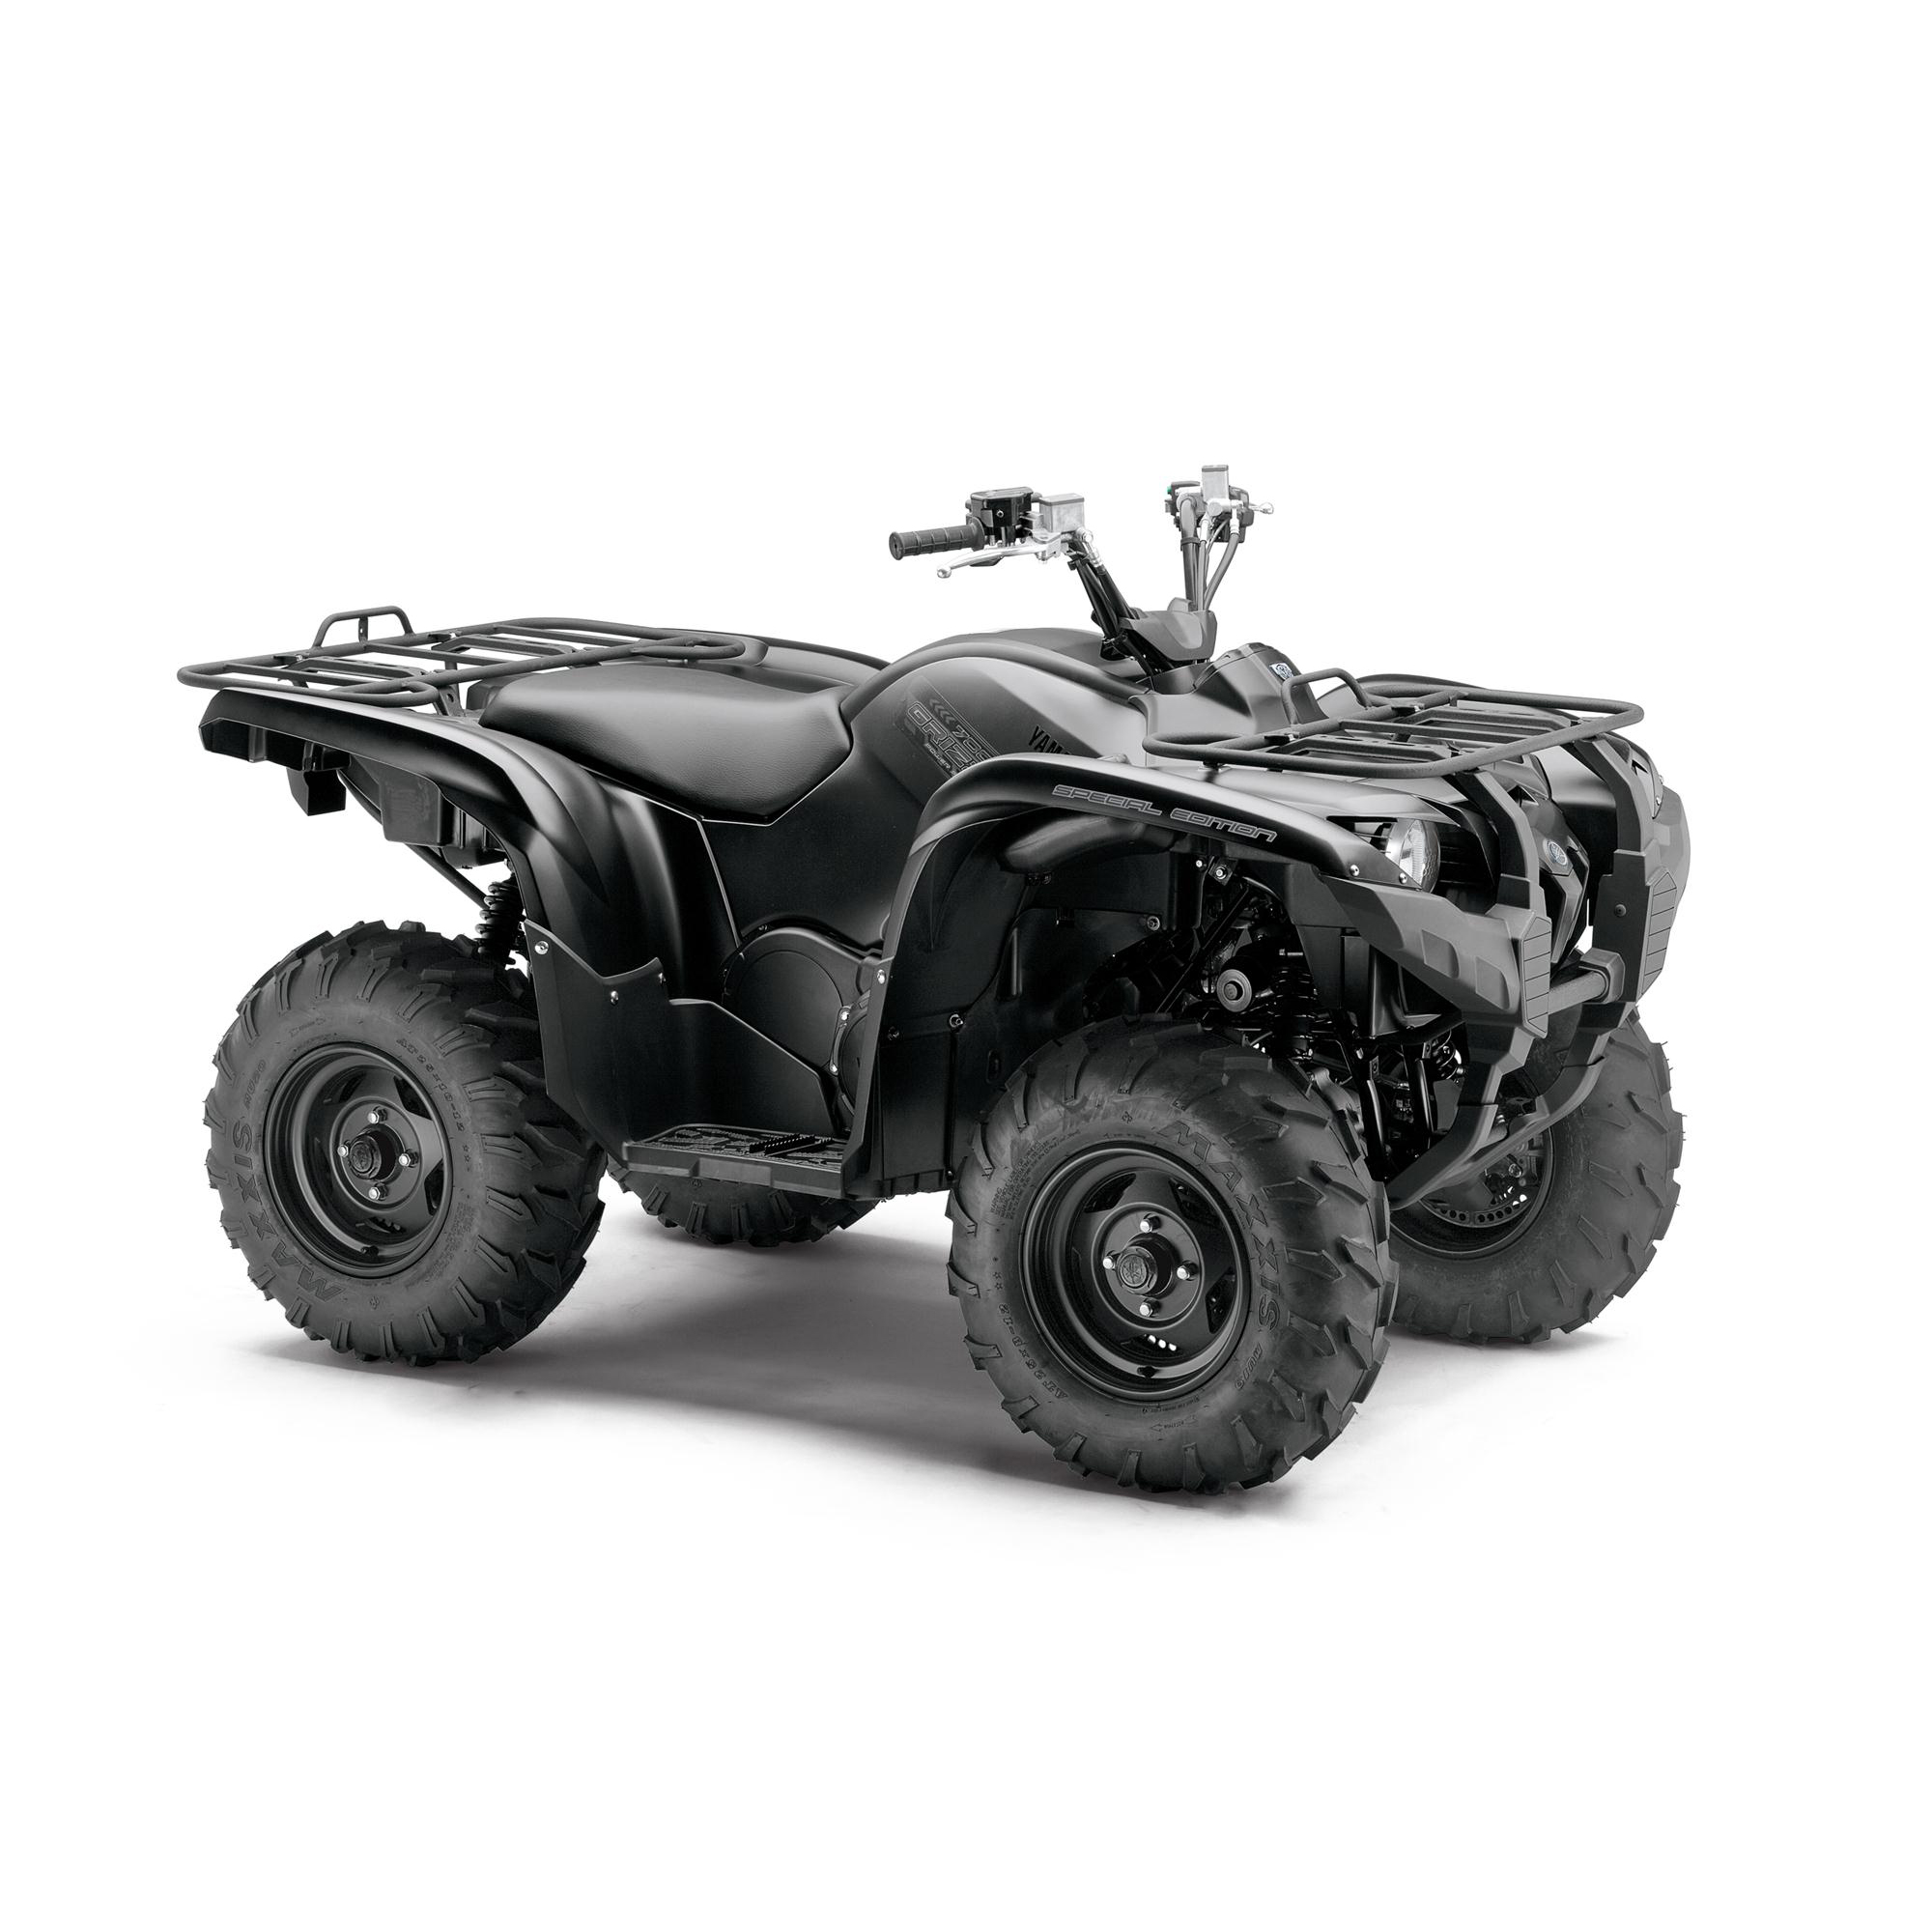 YAMAHA Grizzly 700/550